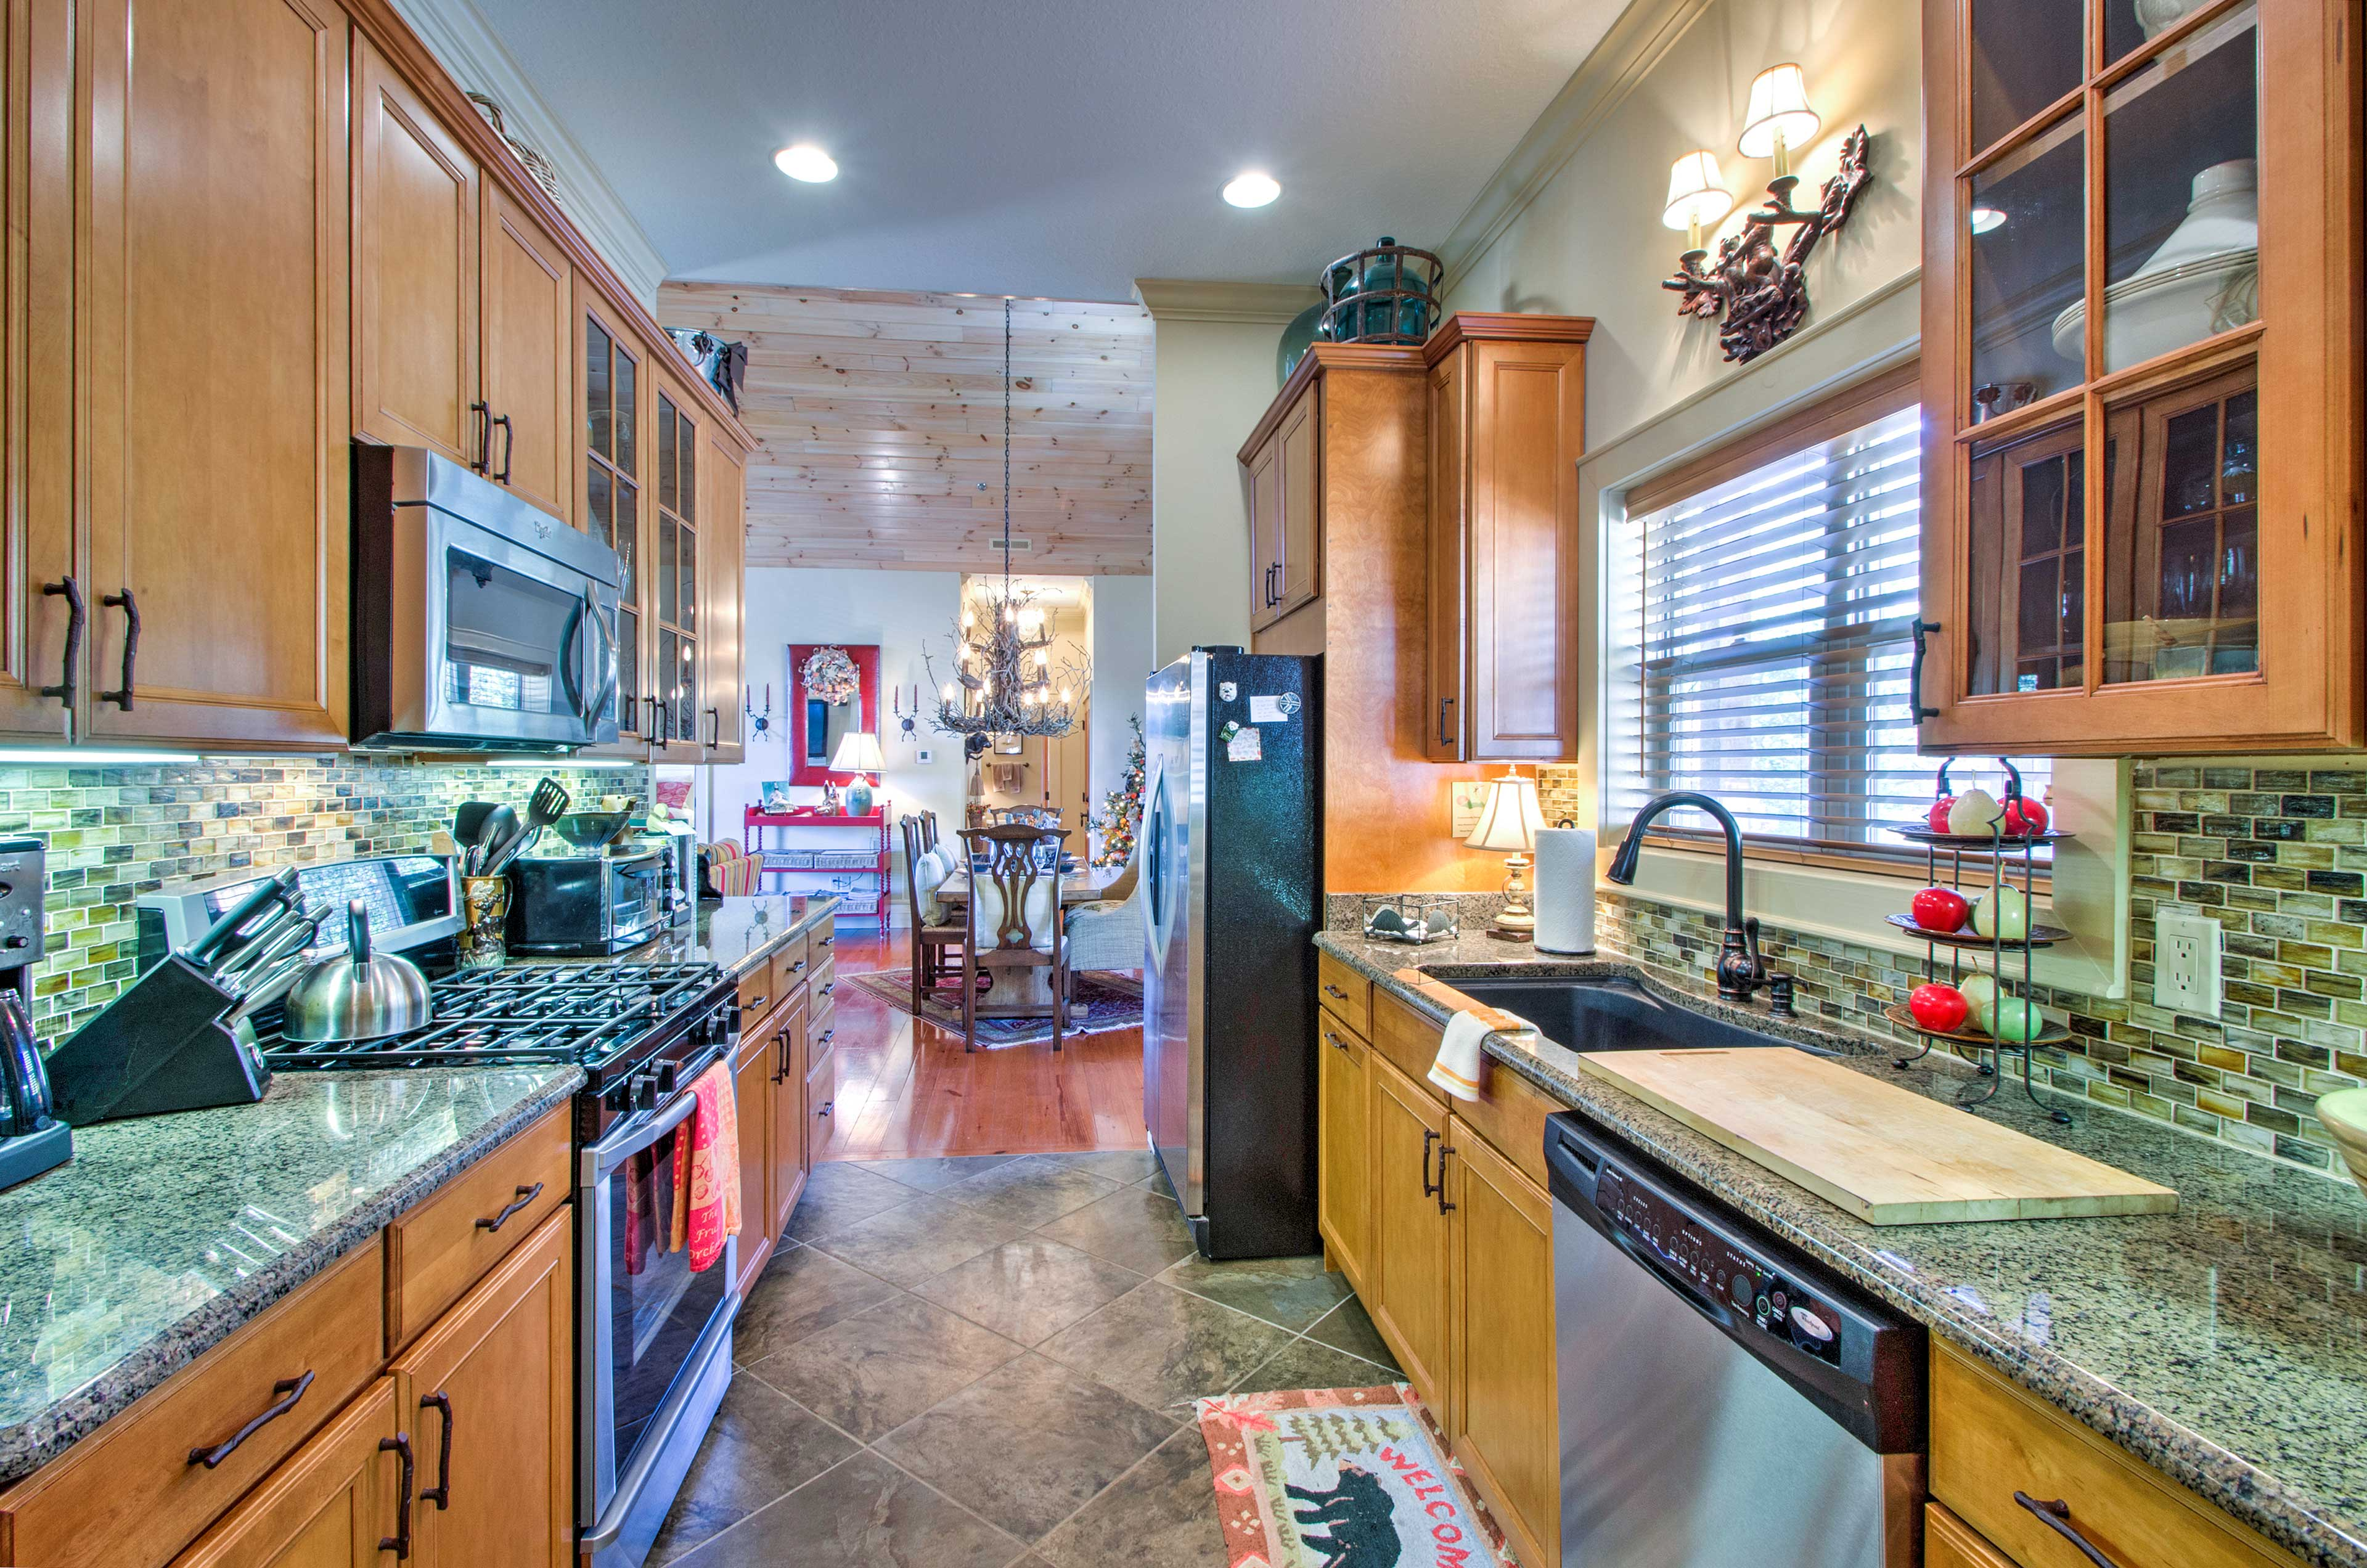 The kitchen offers ample counterspace making it easy to prepare any recipe.